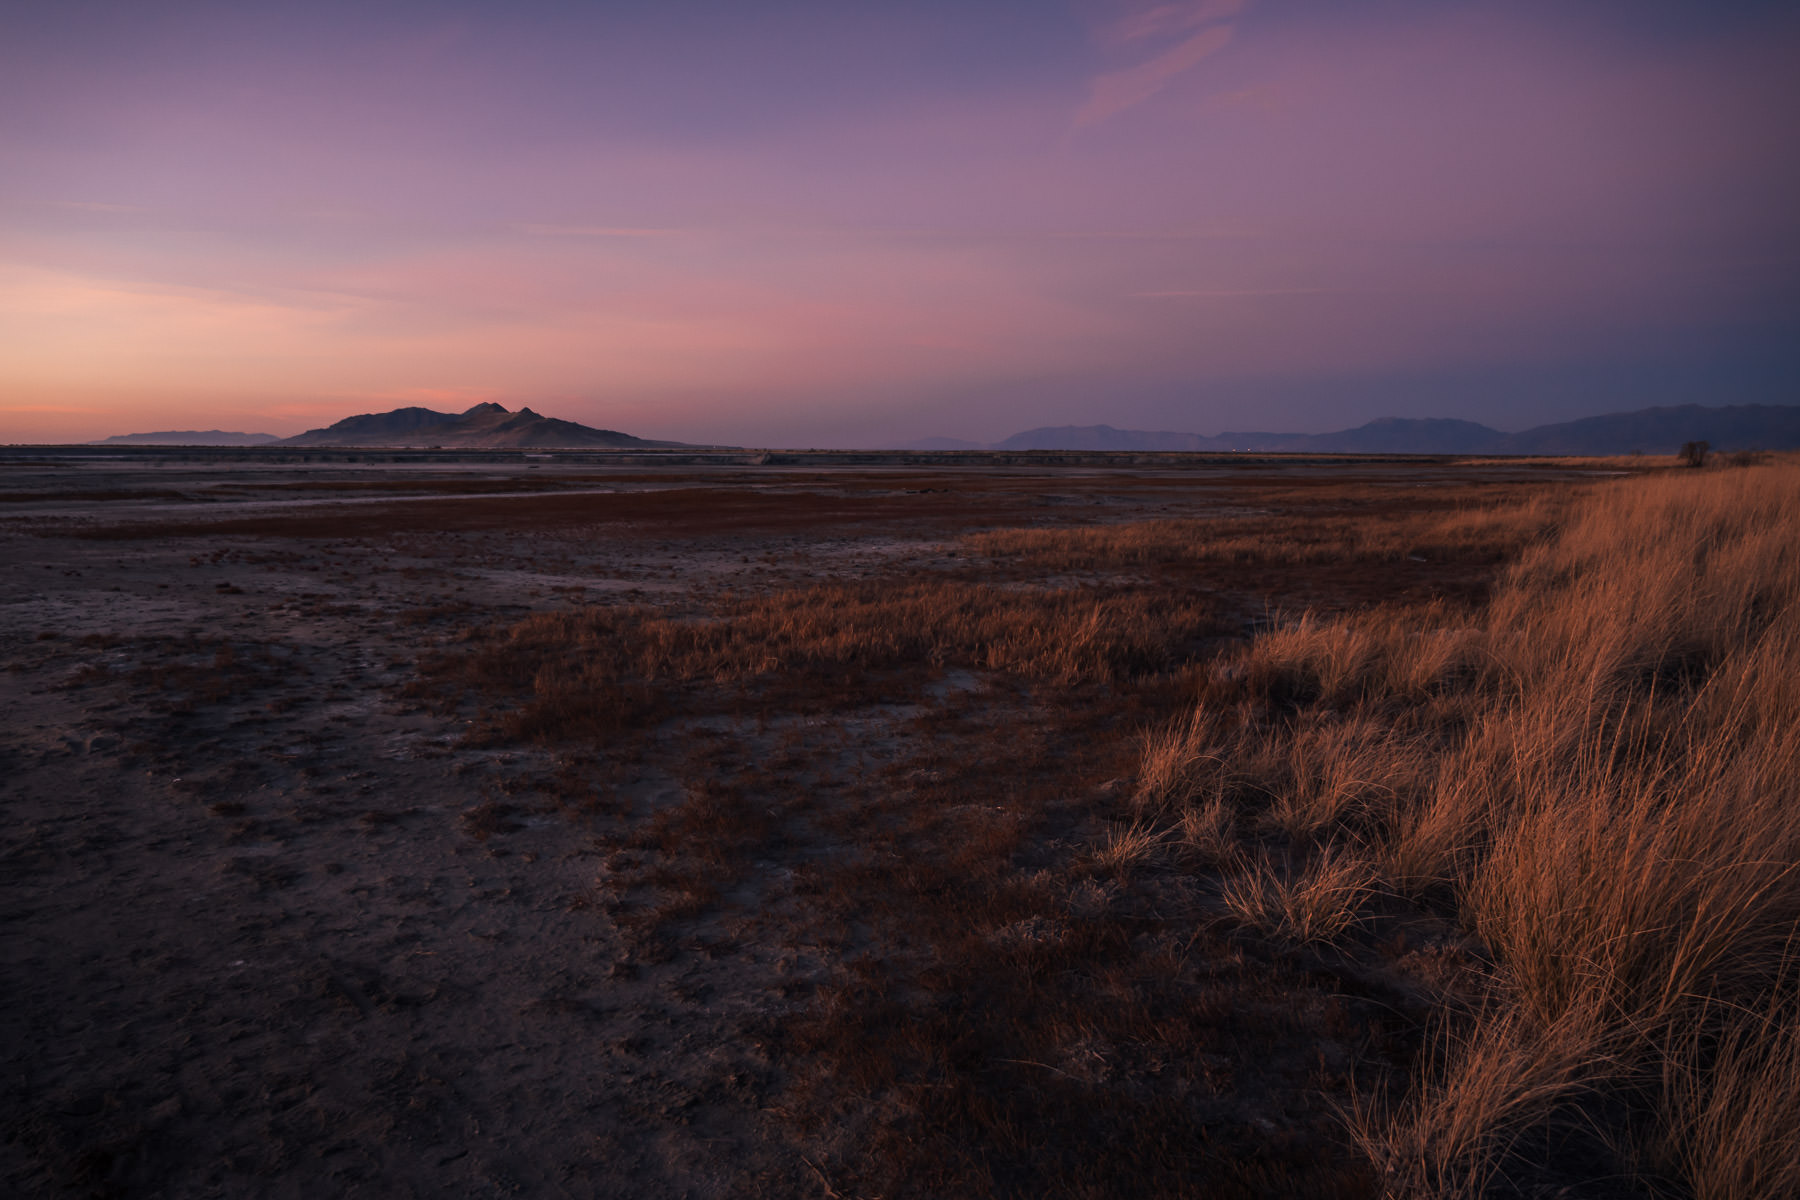 The last light of the day over the shore of Utah's Great Salt Lake.